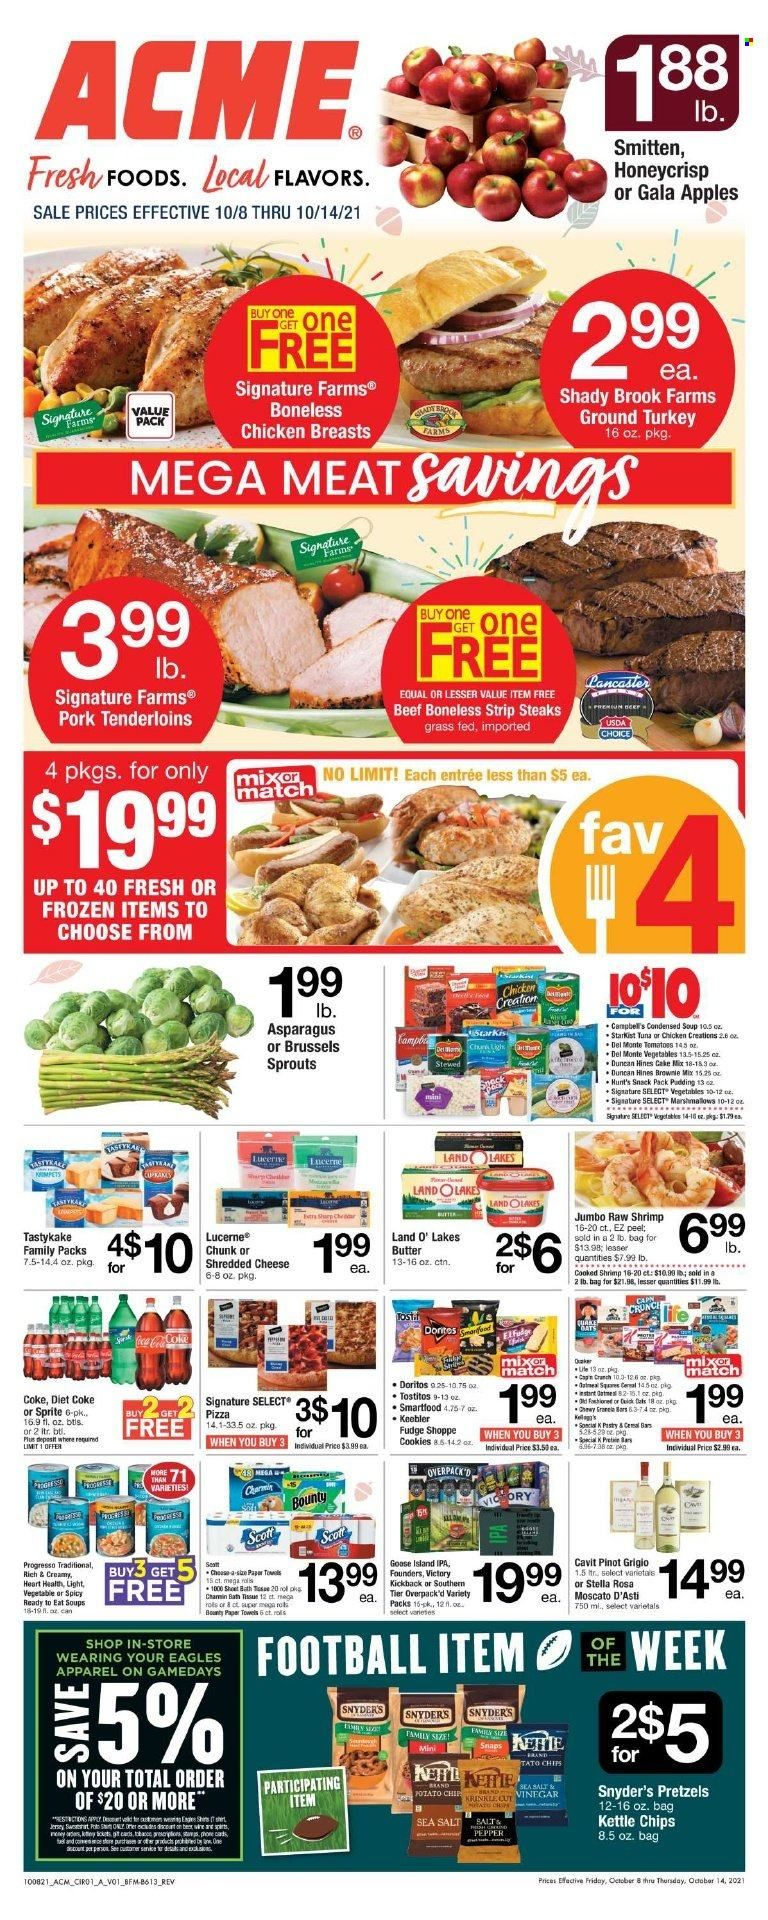 ACME Markets Ad from october 13 to 20 2021 - Page 1